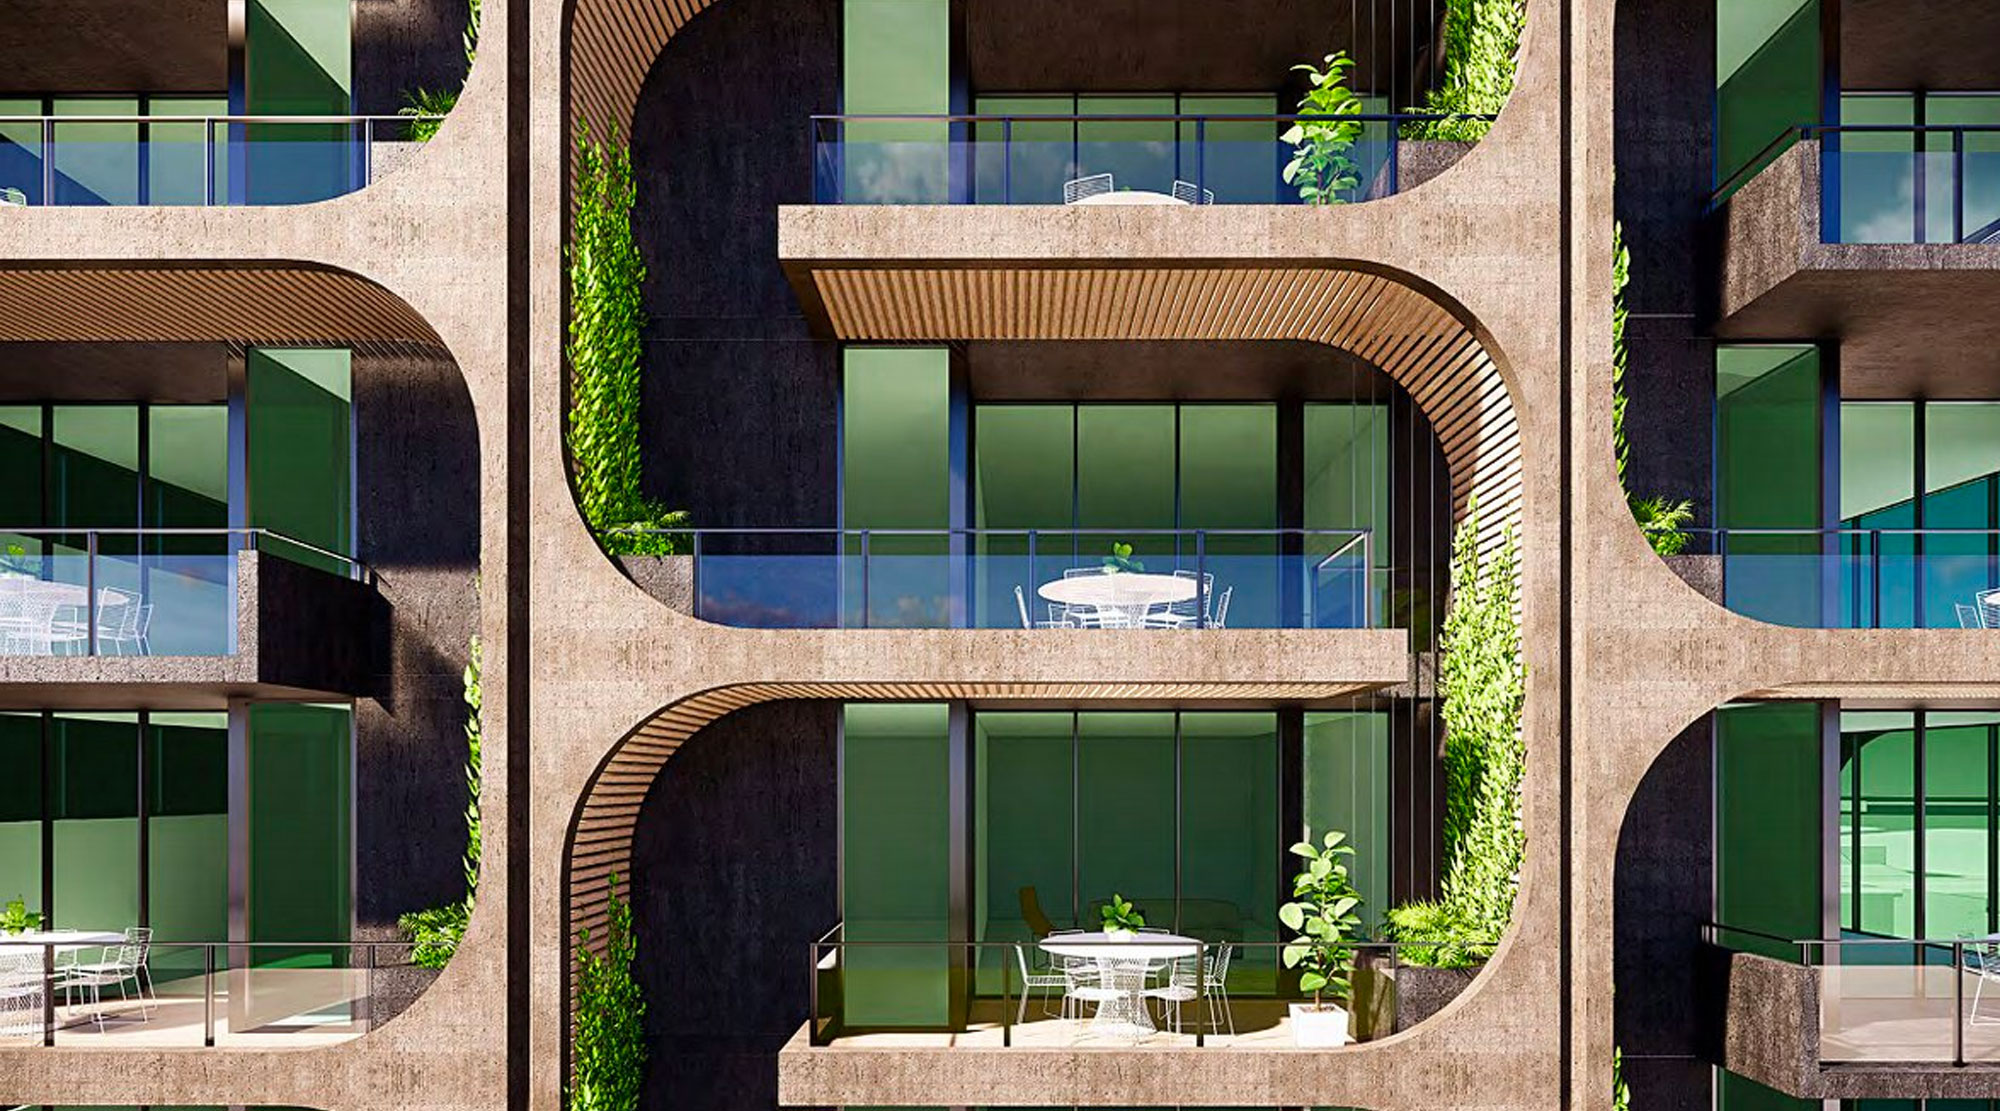 ▲ Aria Property Group's 107-117 Jane Street proposal for Brisbane's West End. Image: Aria Property Group